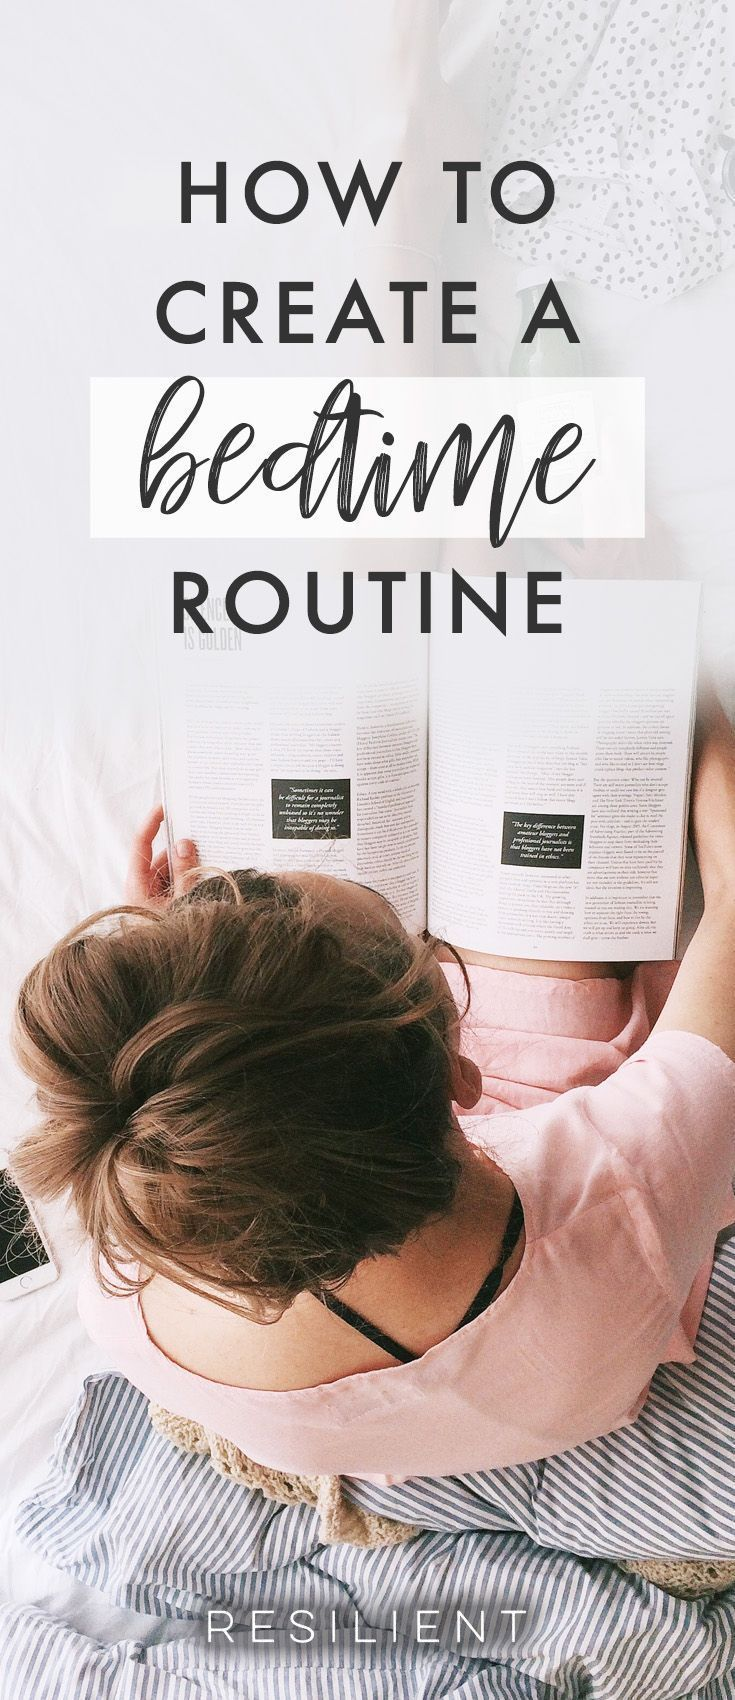 to Create a Bedtime Routine Having simple routines in our day can help you simplify your life and have less stress because you know what you need to do without having to think about it. And your sleep quality can definitely benefit from having a nightly routine for getting ready insHaving simple routines in our day can help you simplify your life and h...